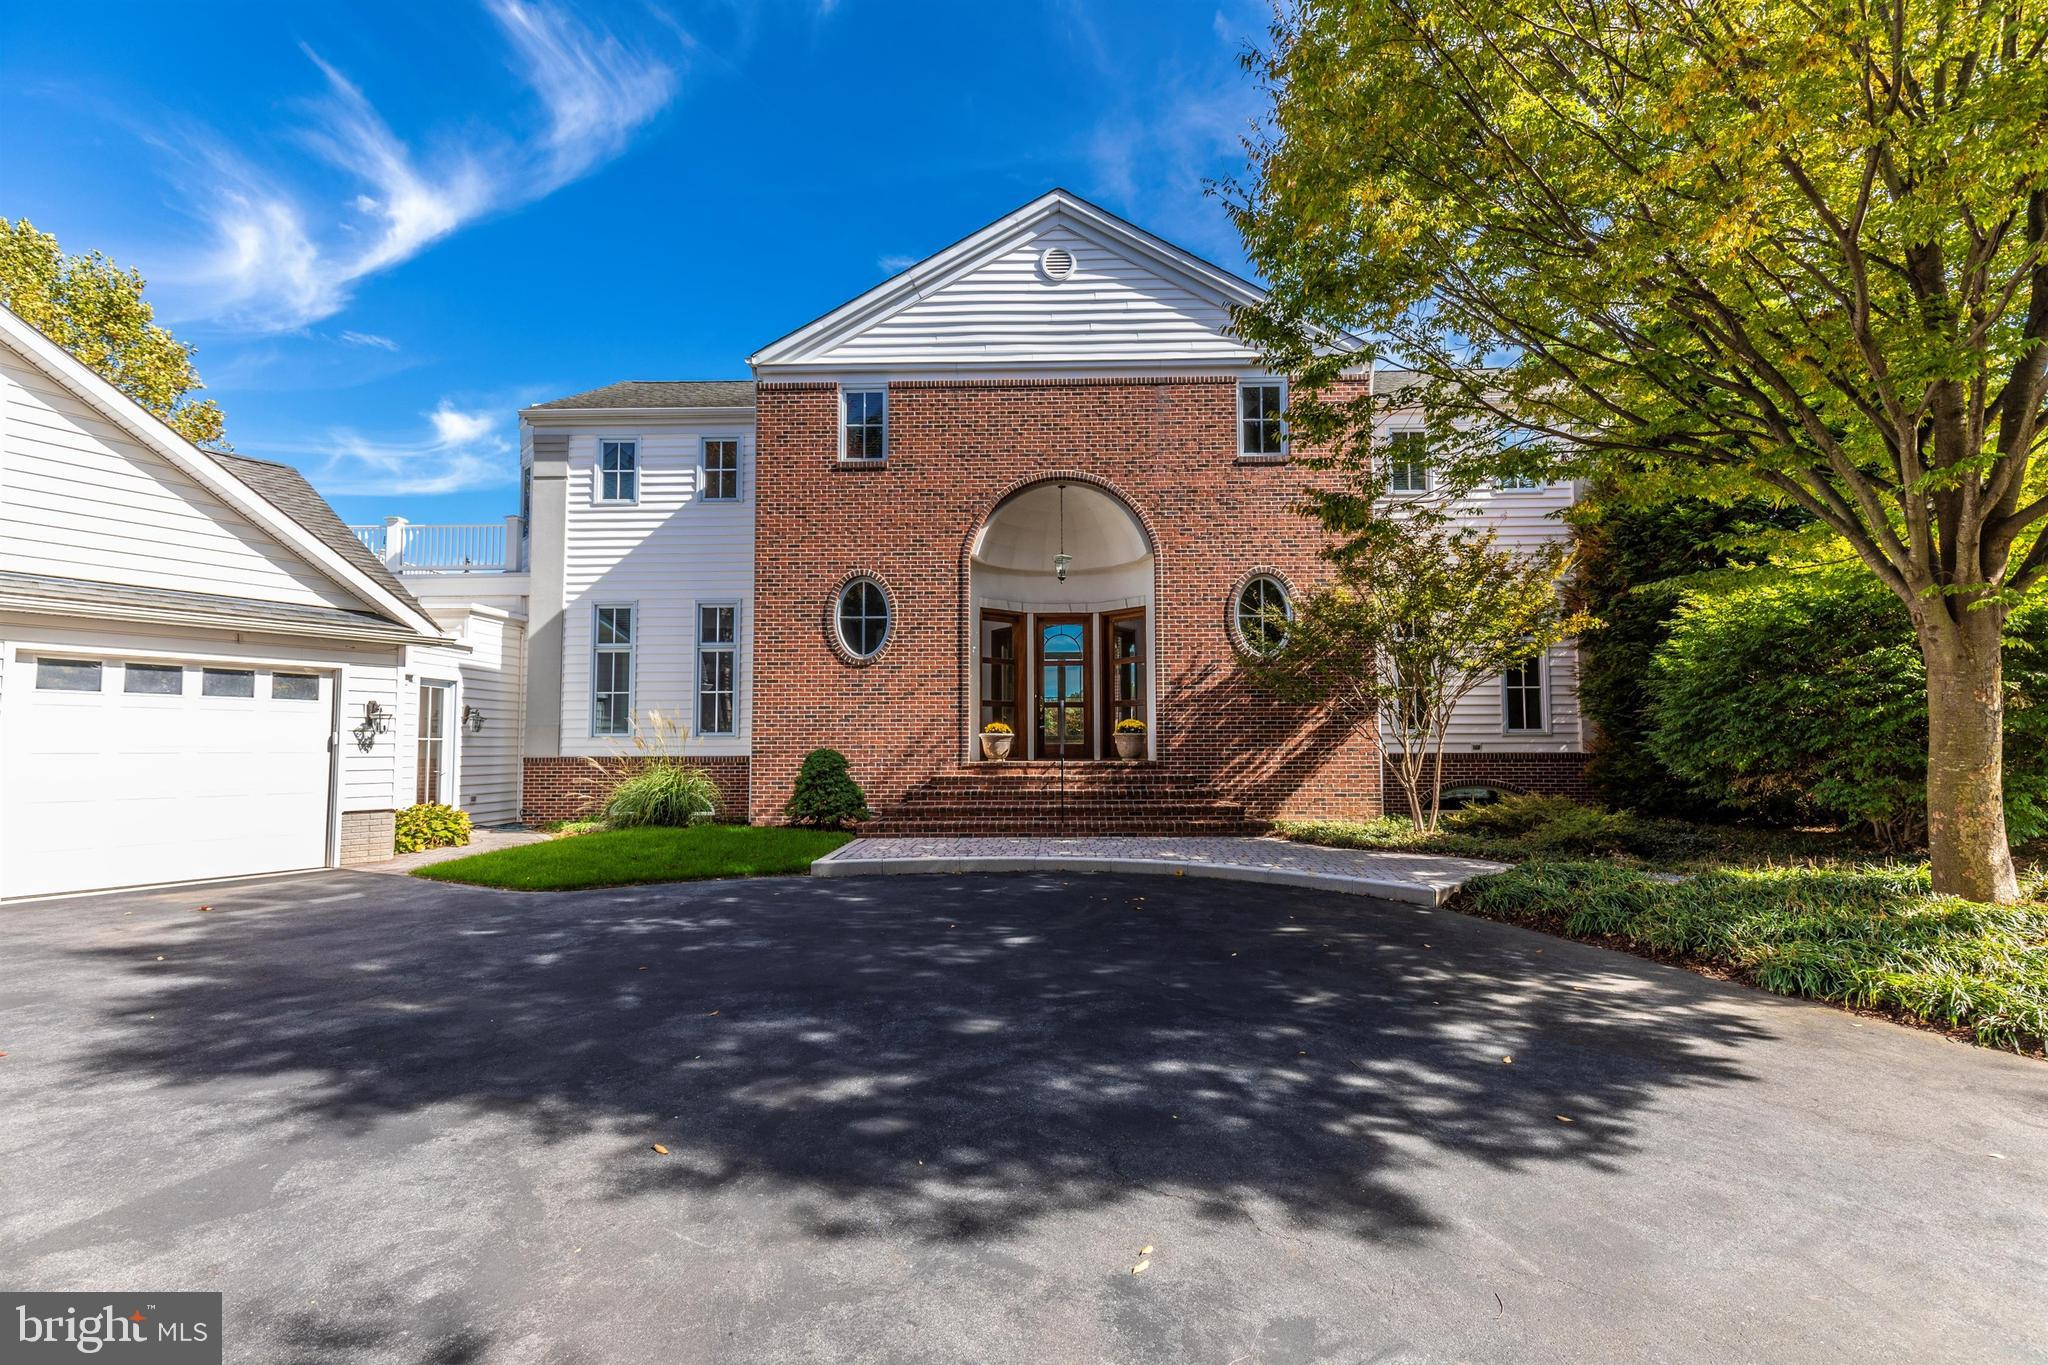 10035 PEBBLE BEACH TERRACE, IJAMSVILLE, MD 21754